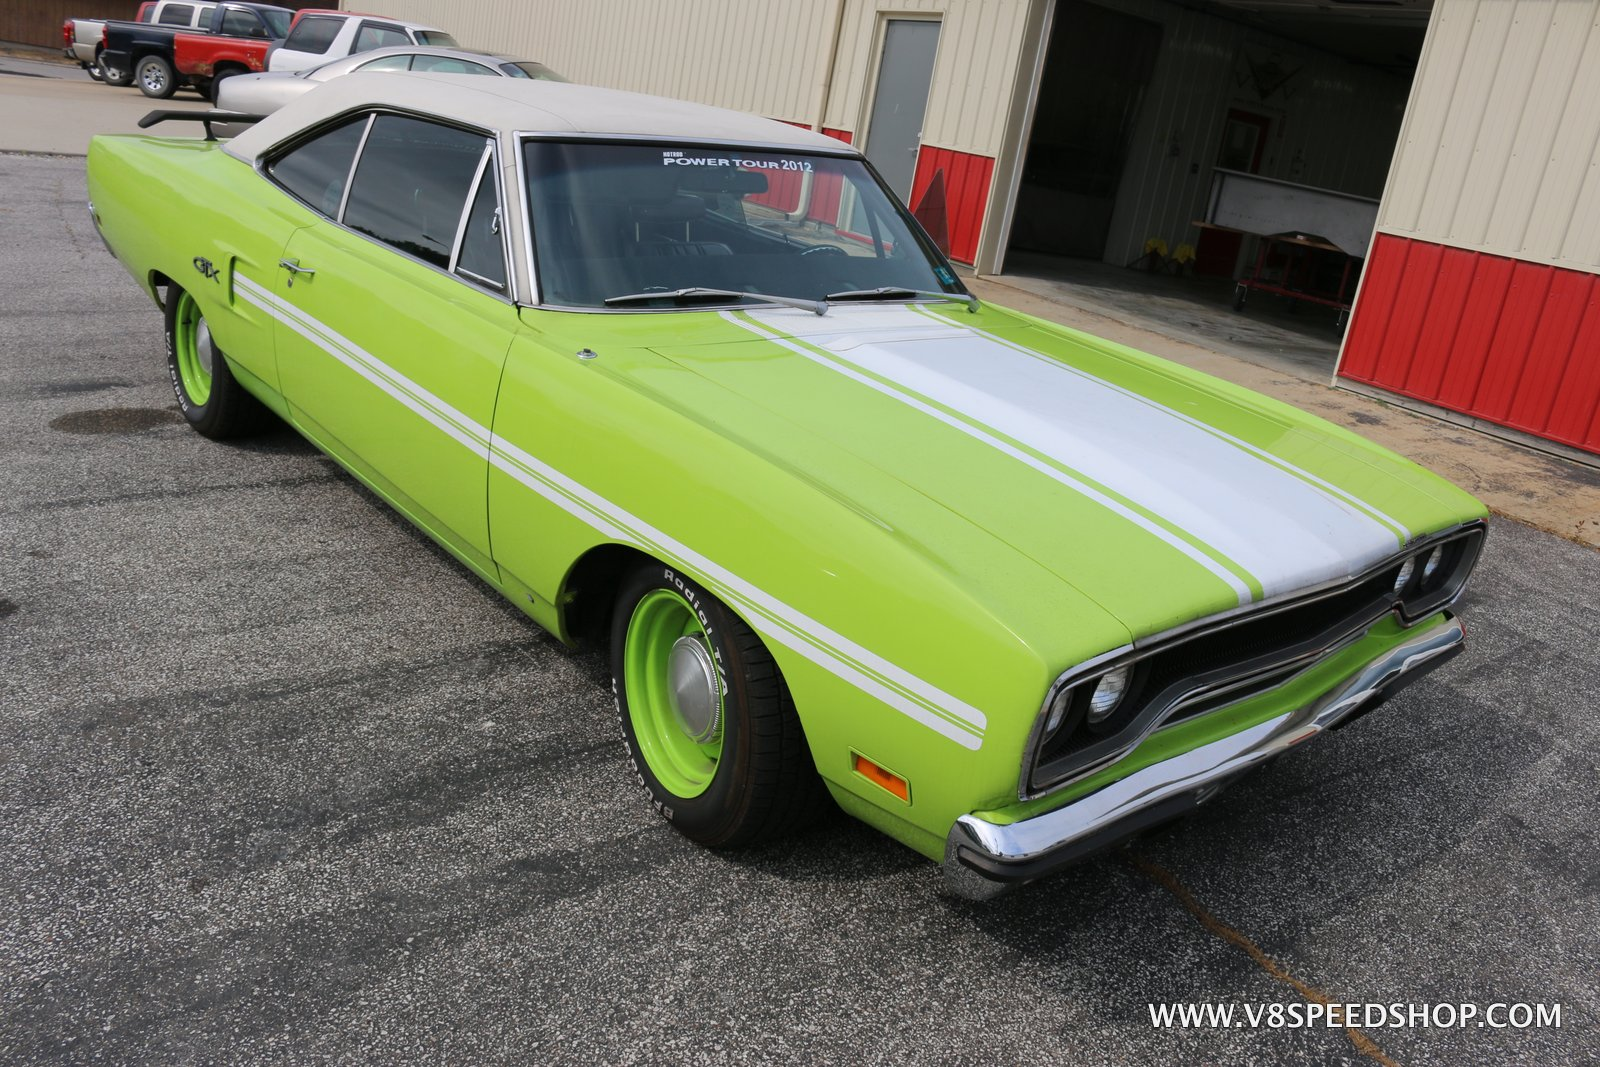 1970 Plymouth Roadrunner Transformation at the V8 Speed and Resto Shop